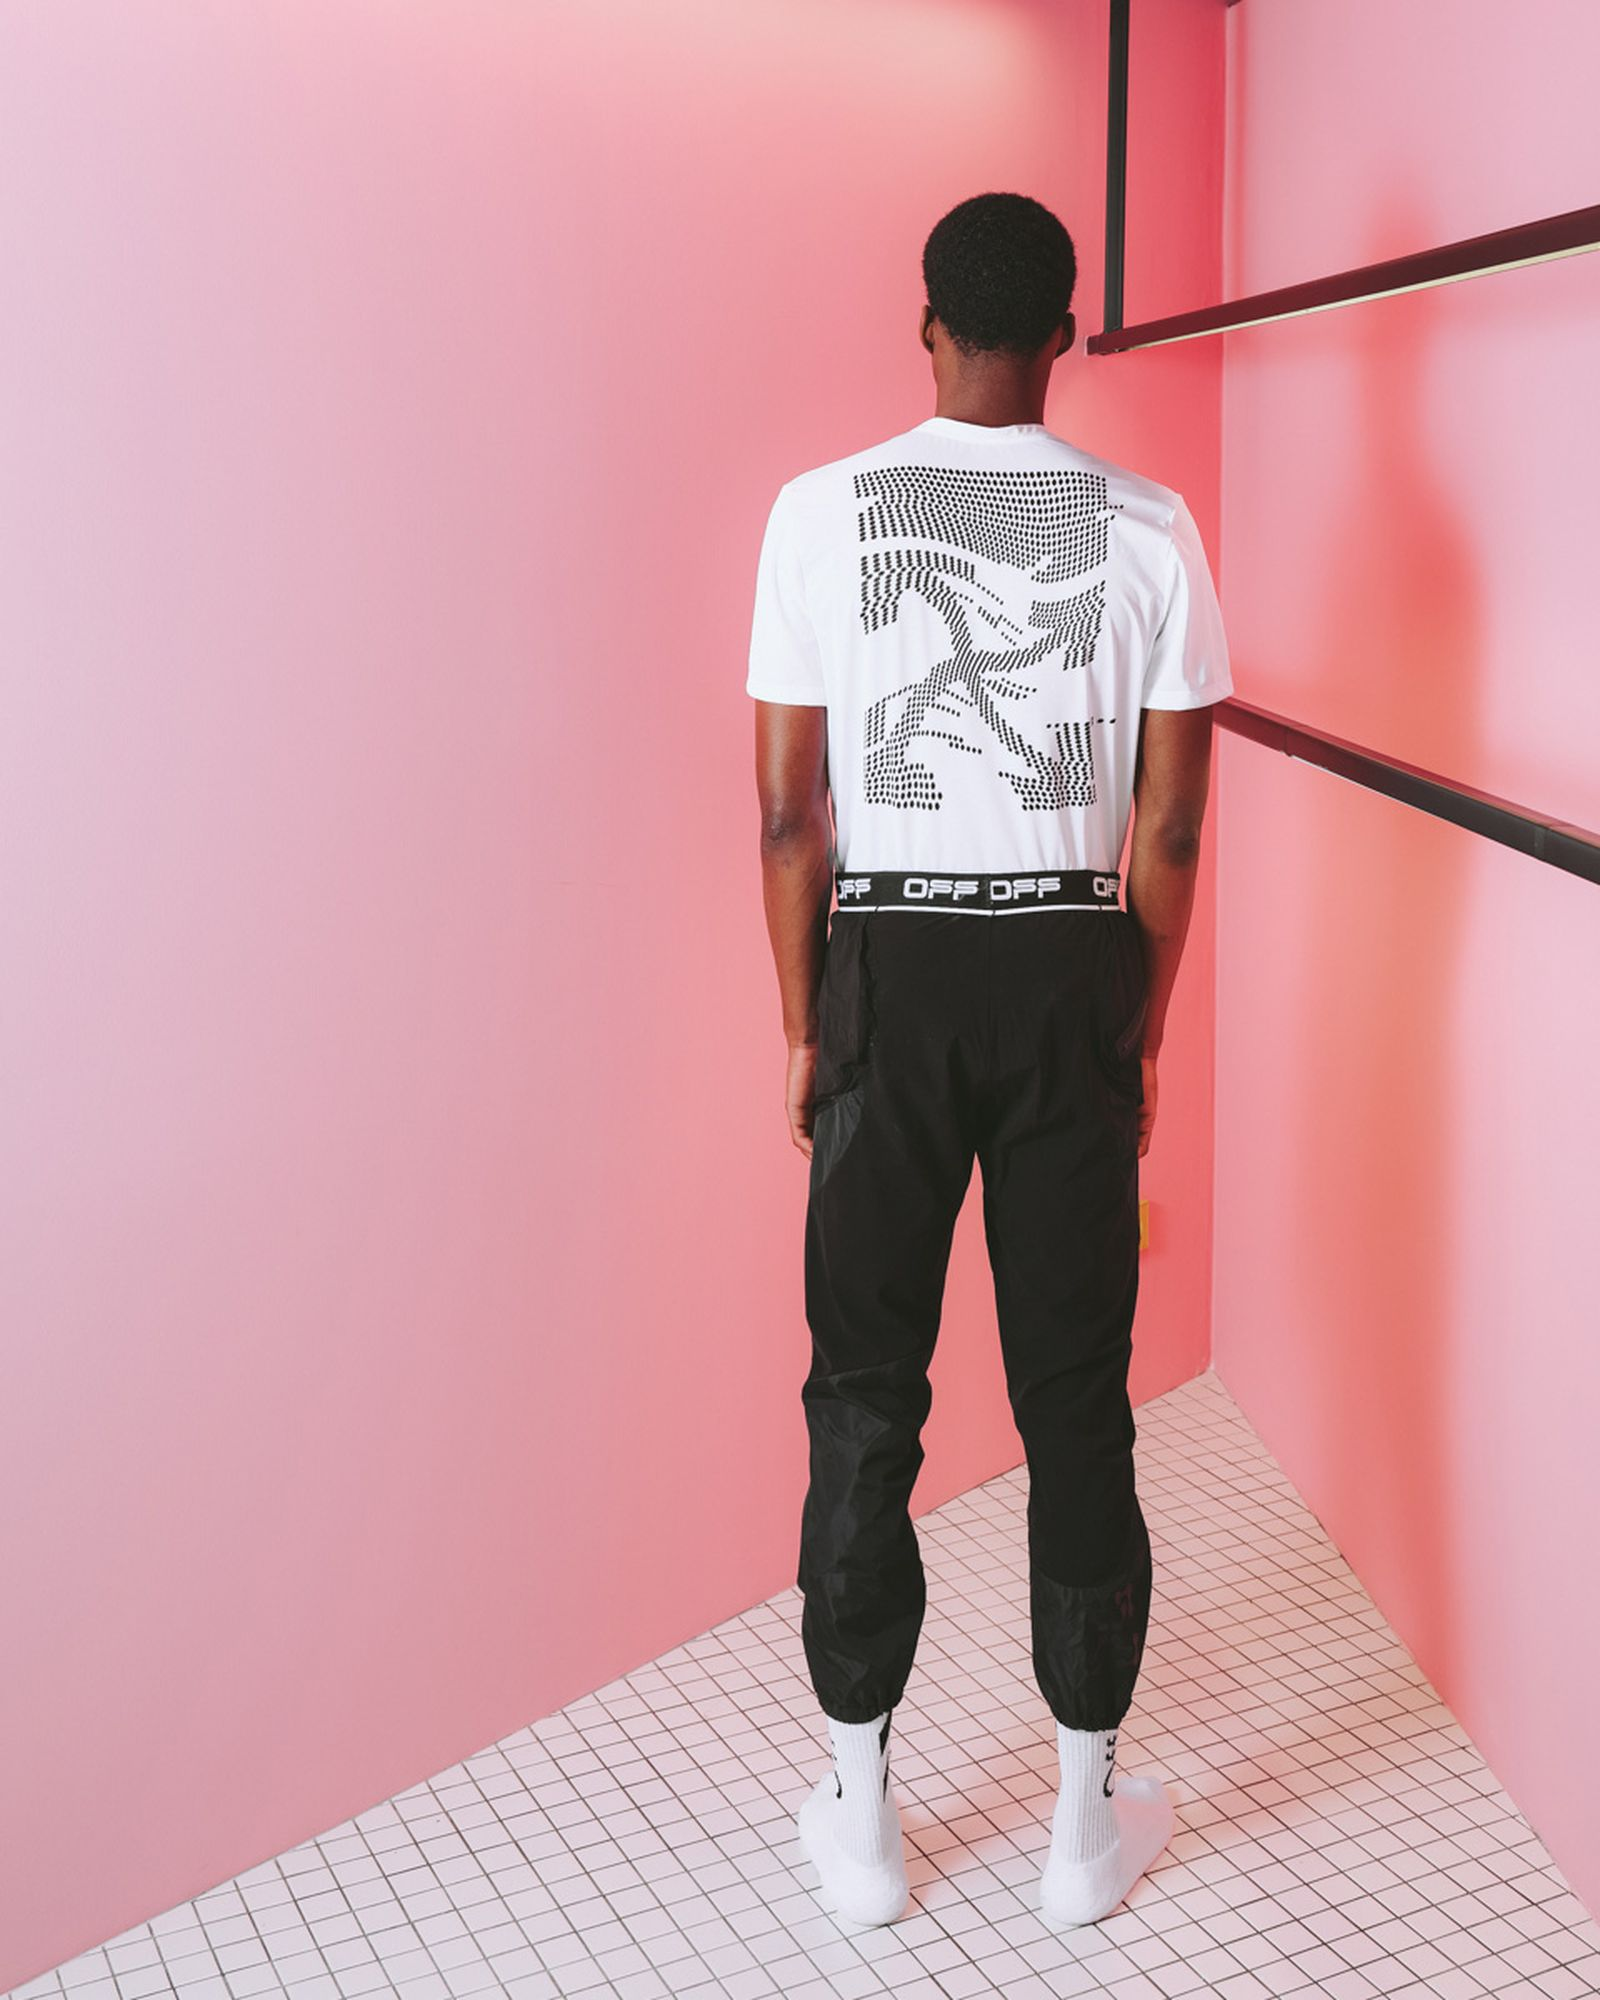 off-white-off-active-collection-two-22